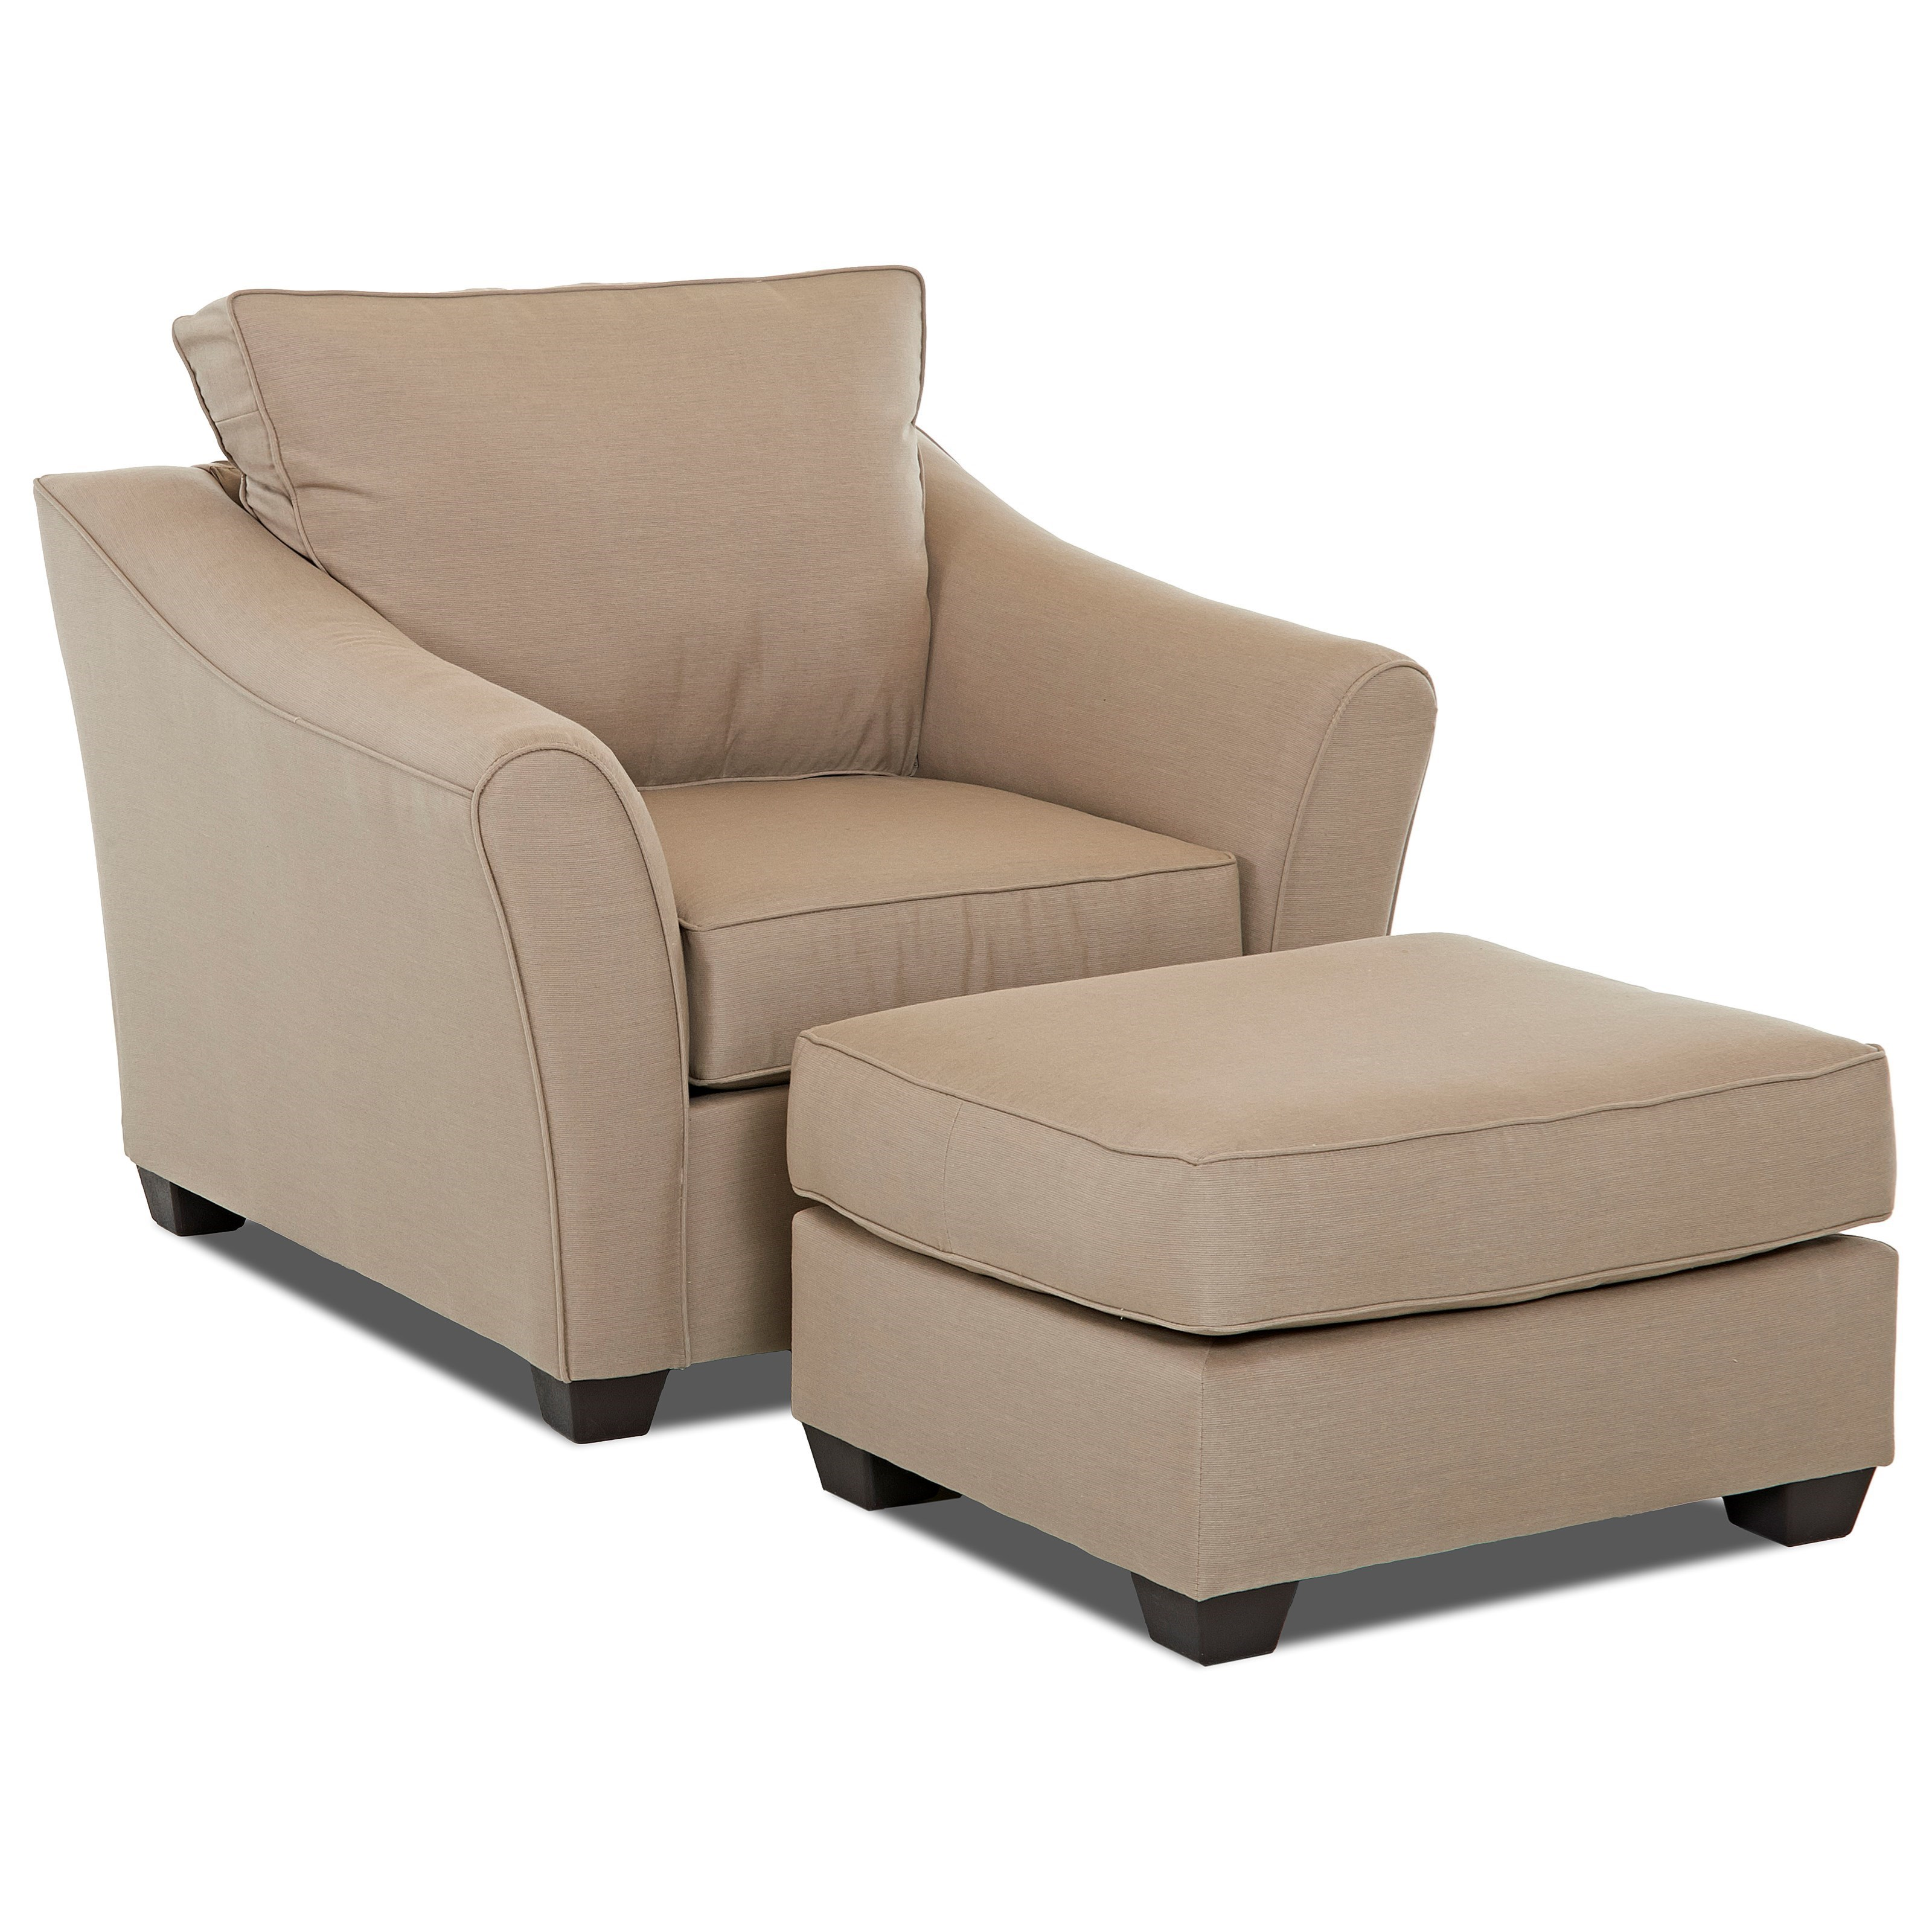 Linville Chair & Ottoman Set by Klaussner at Northeast Factory Direct